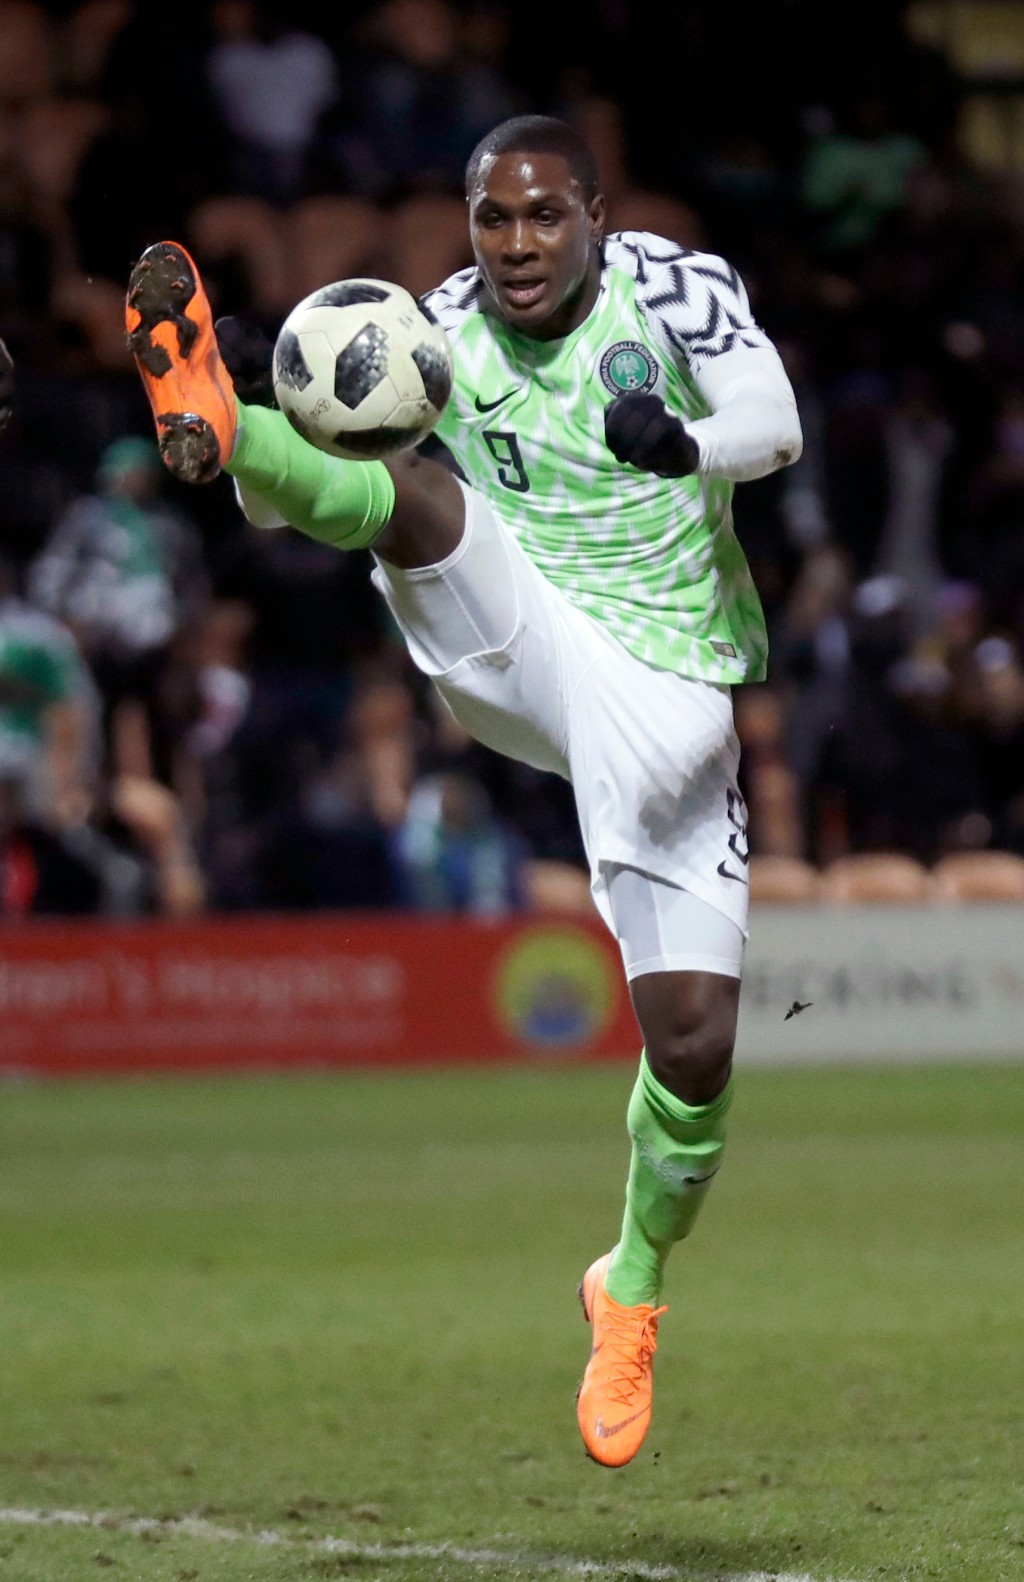 In this photo taken on Tuesday, March 27, 2018, Nigeria's Odion Ighalo reaches for the ball during the international friendly soccer match between Ser...